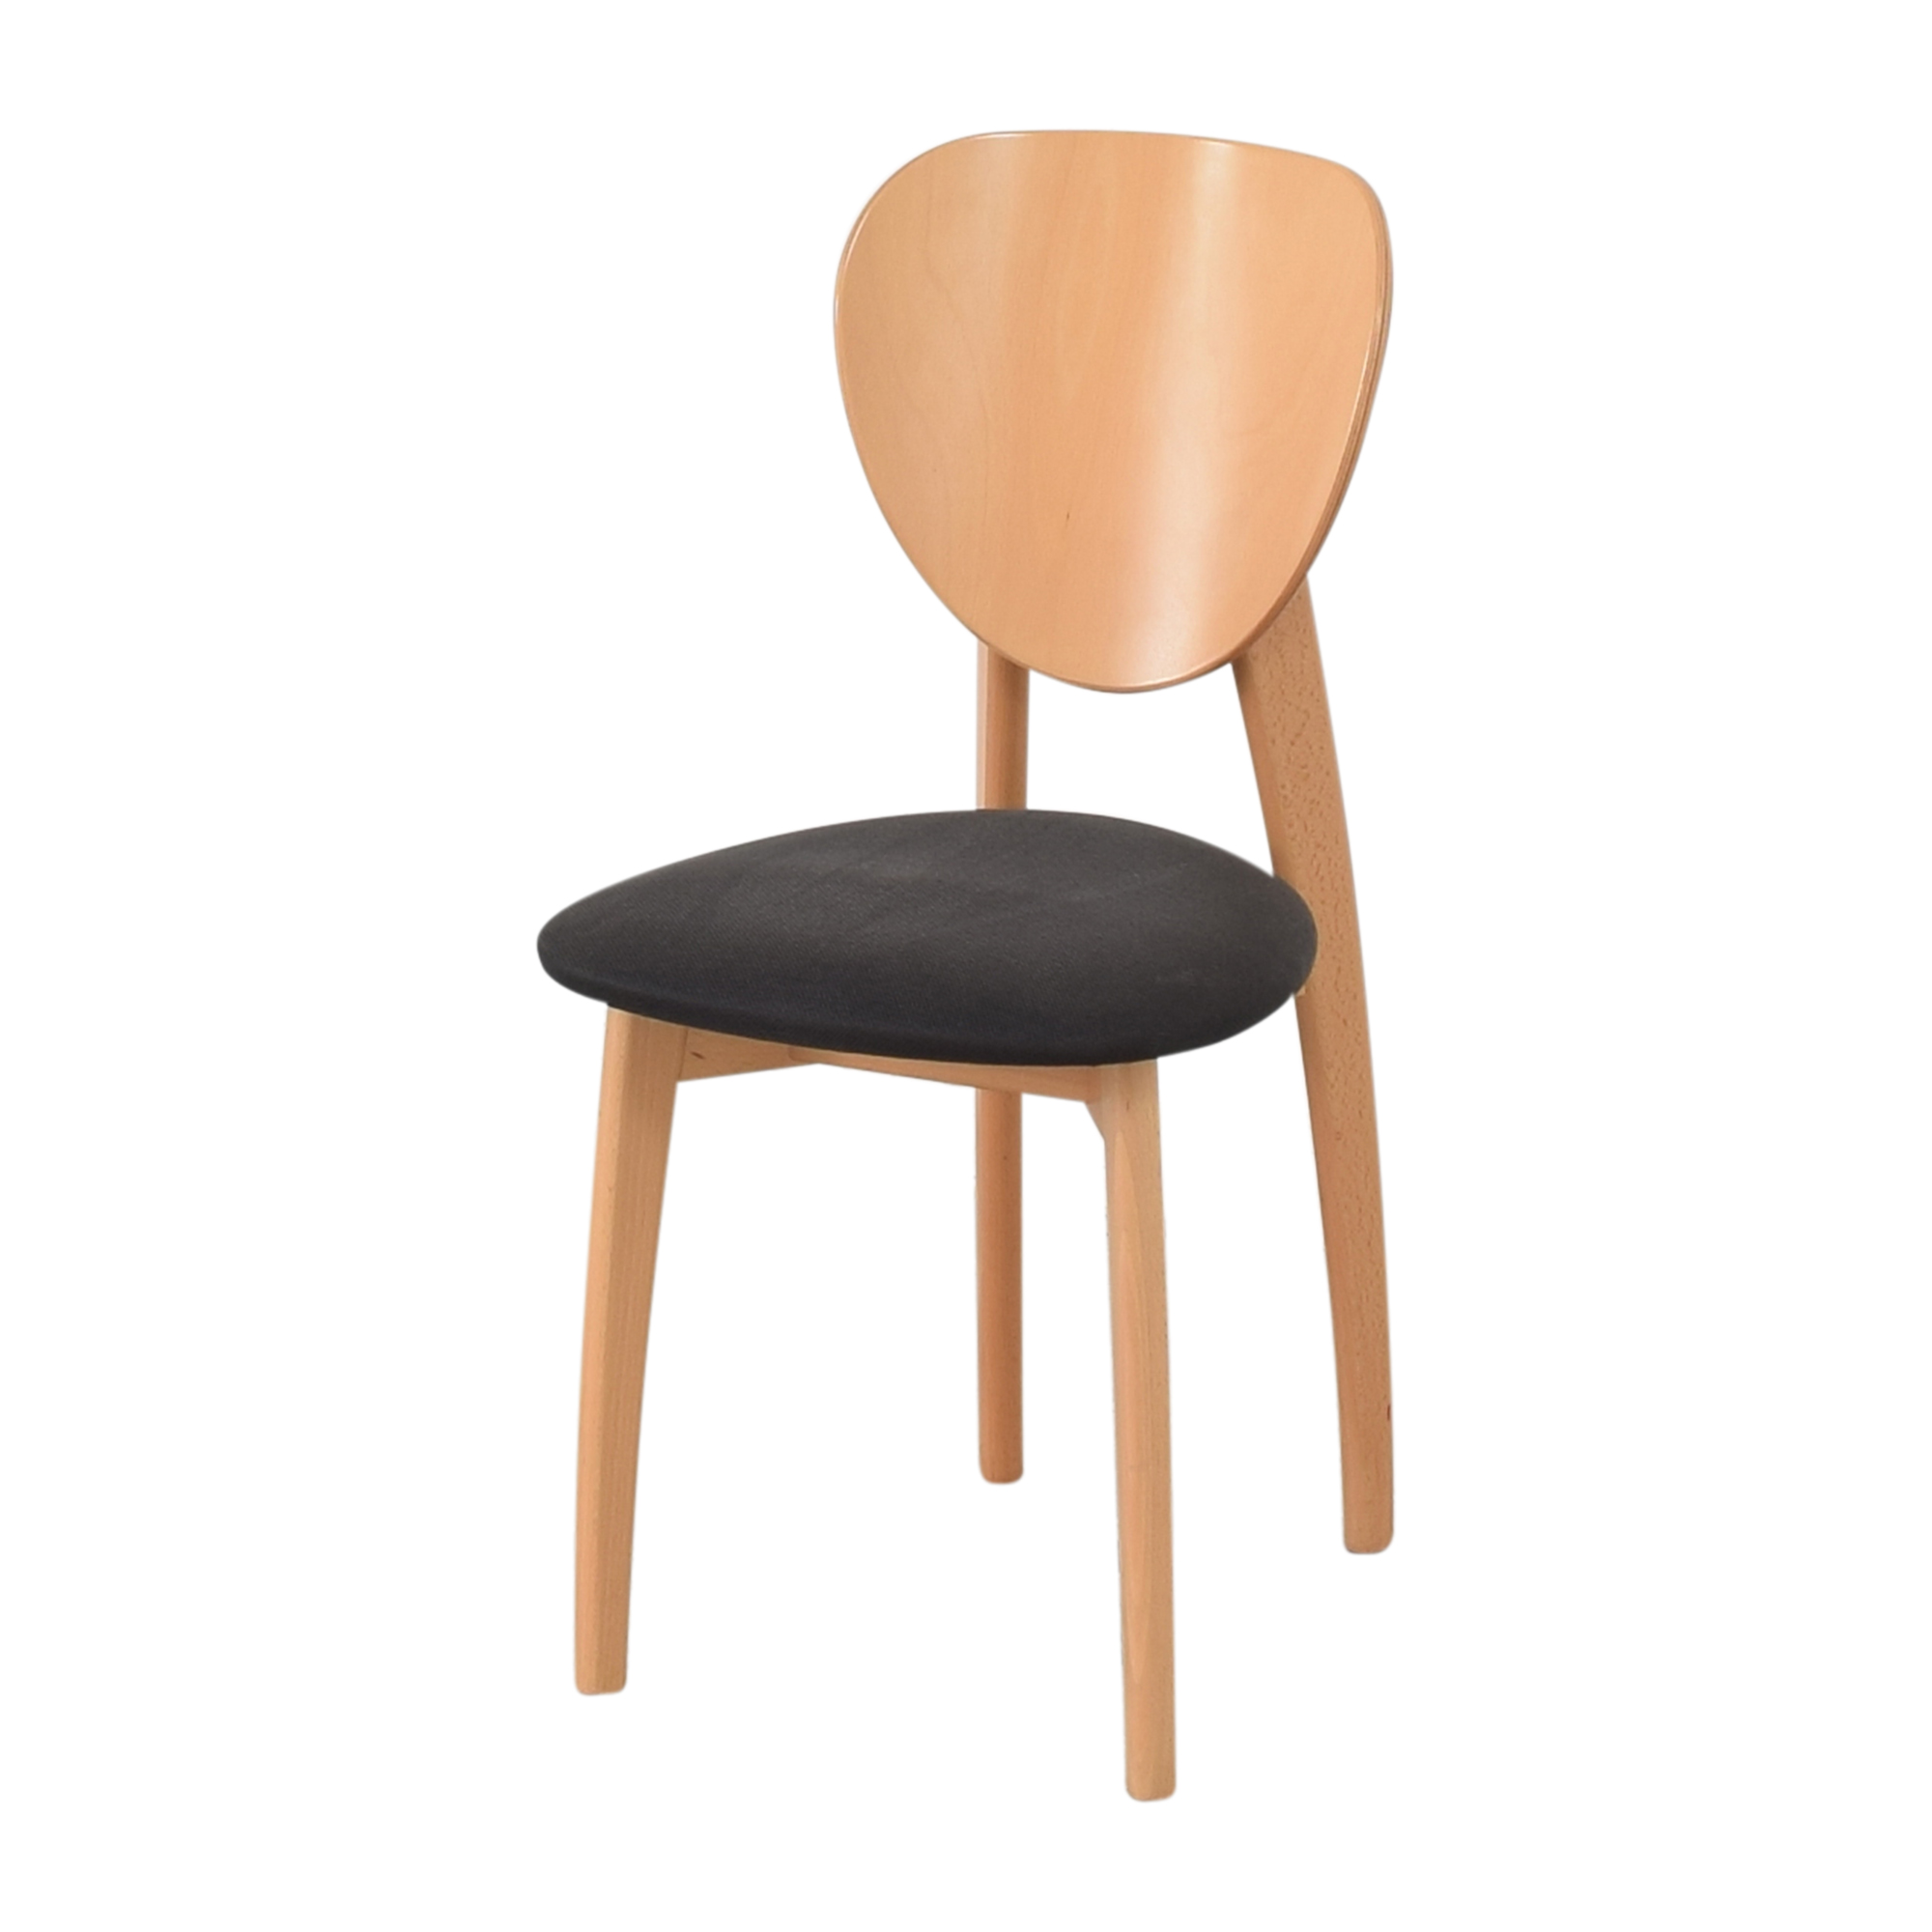 buy Calligaris Calligaris Modern Dining Chairs online